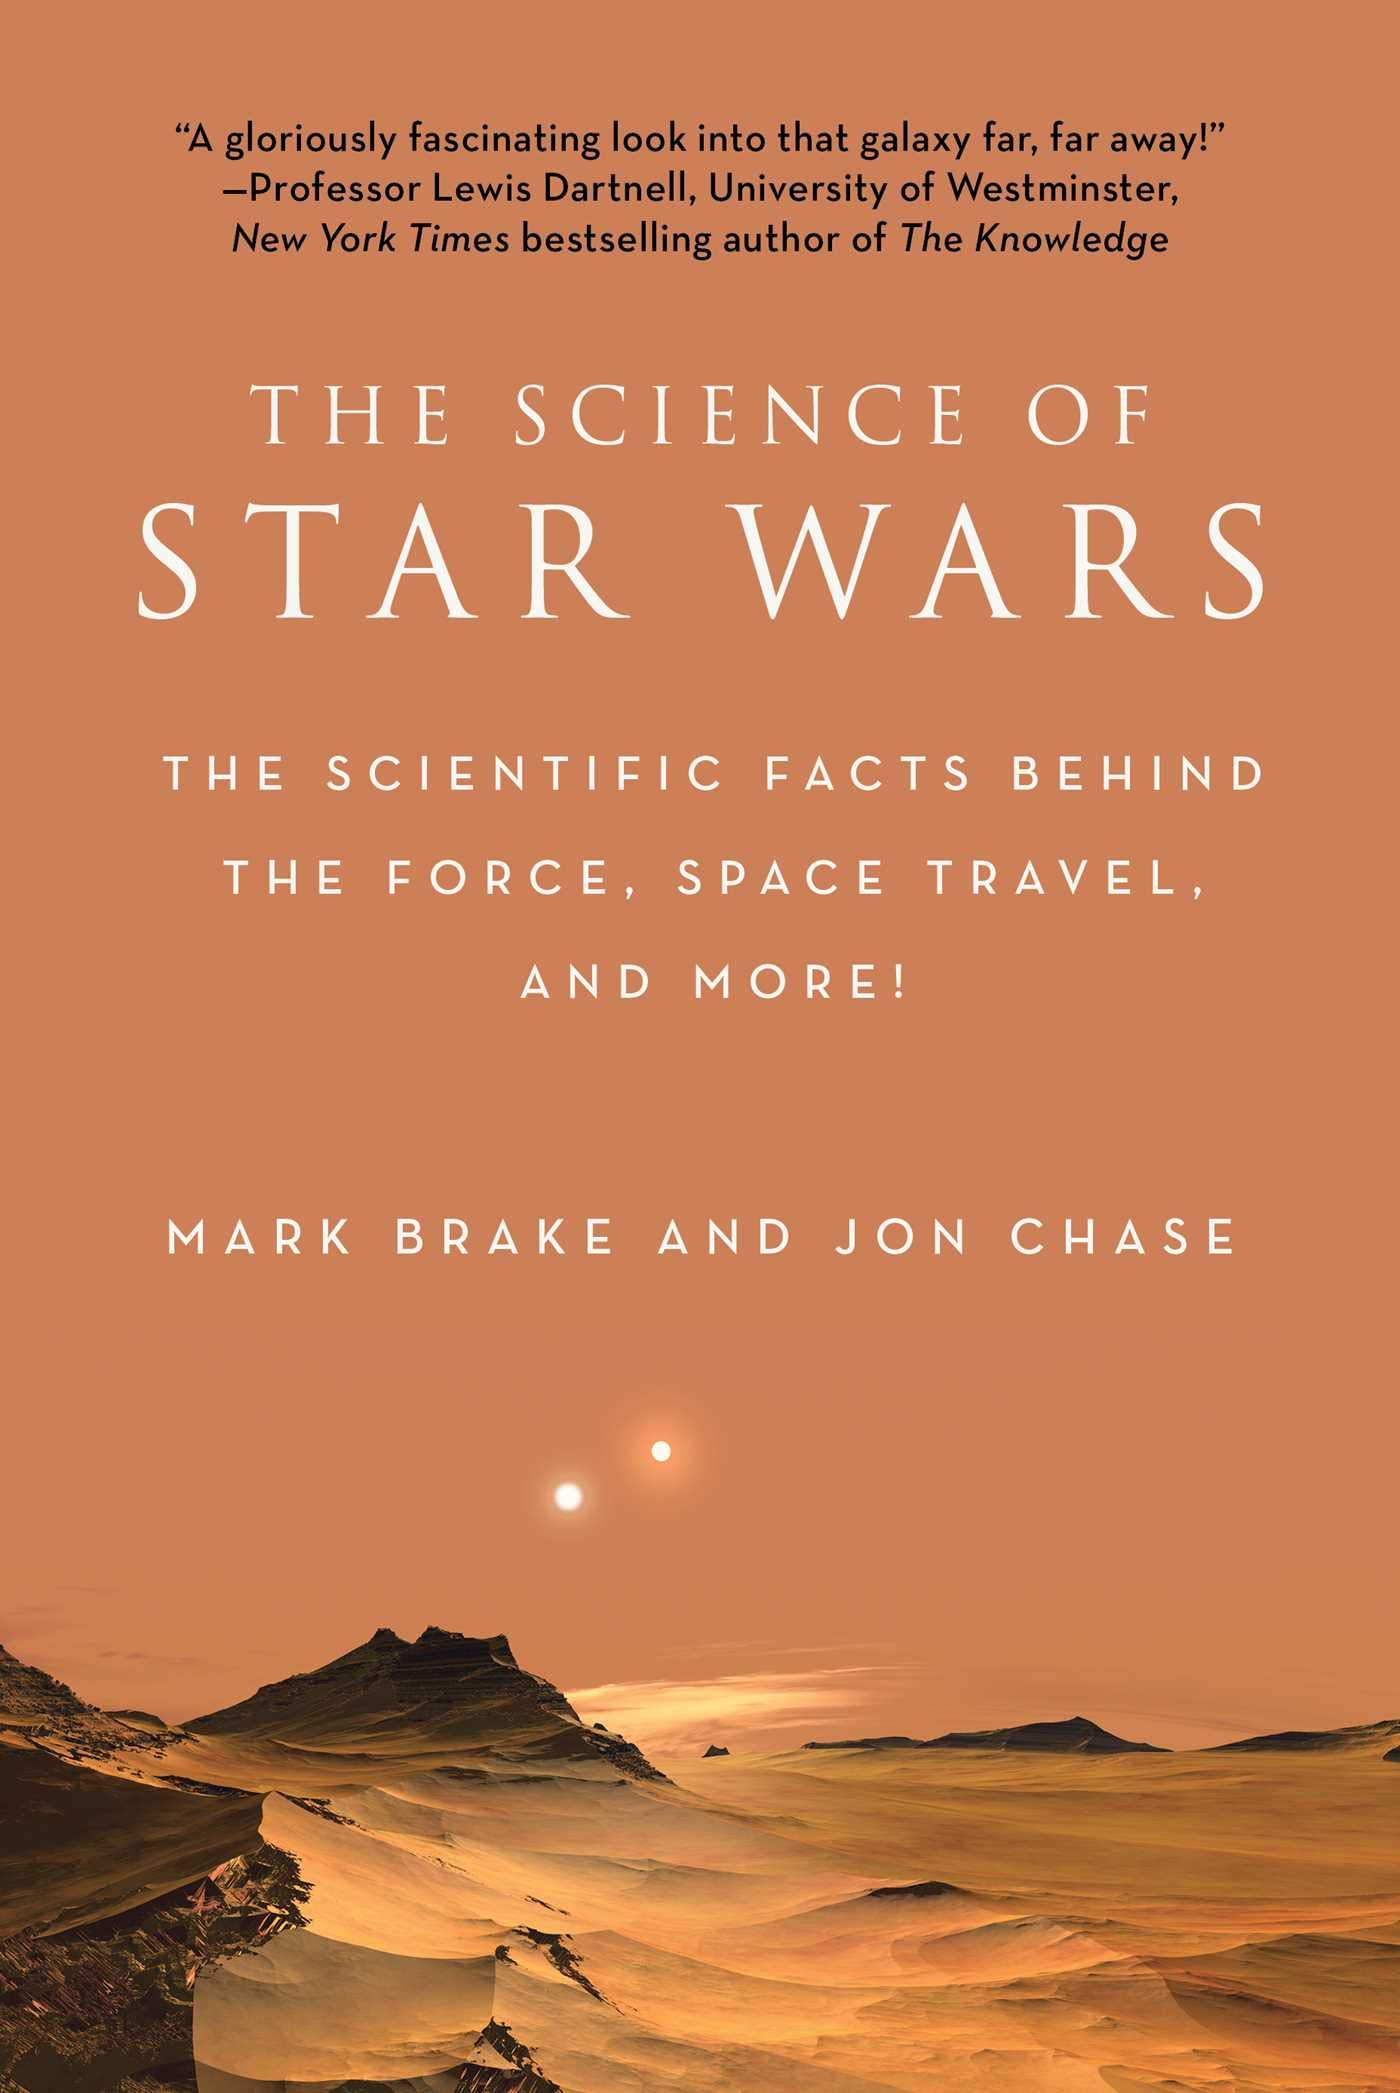 Amazon.com: The Science of Star Wars: The Scientific Facts Behind the  Force, Space Travel, and More! (9781944686284): Mark Brake, Jon Chase: Books